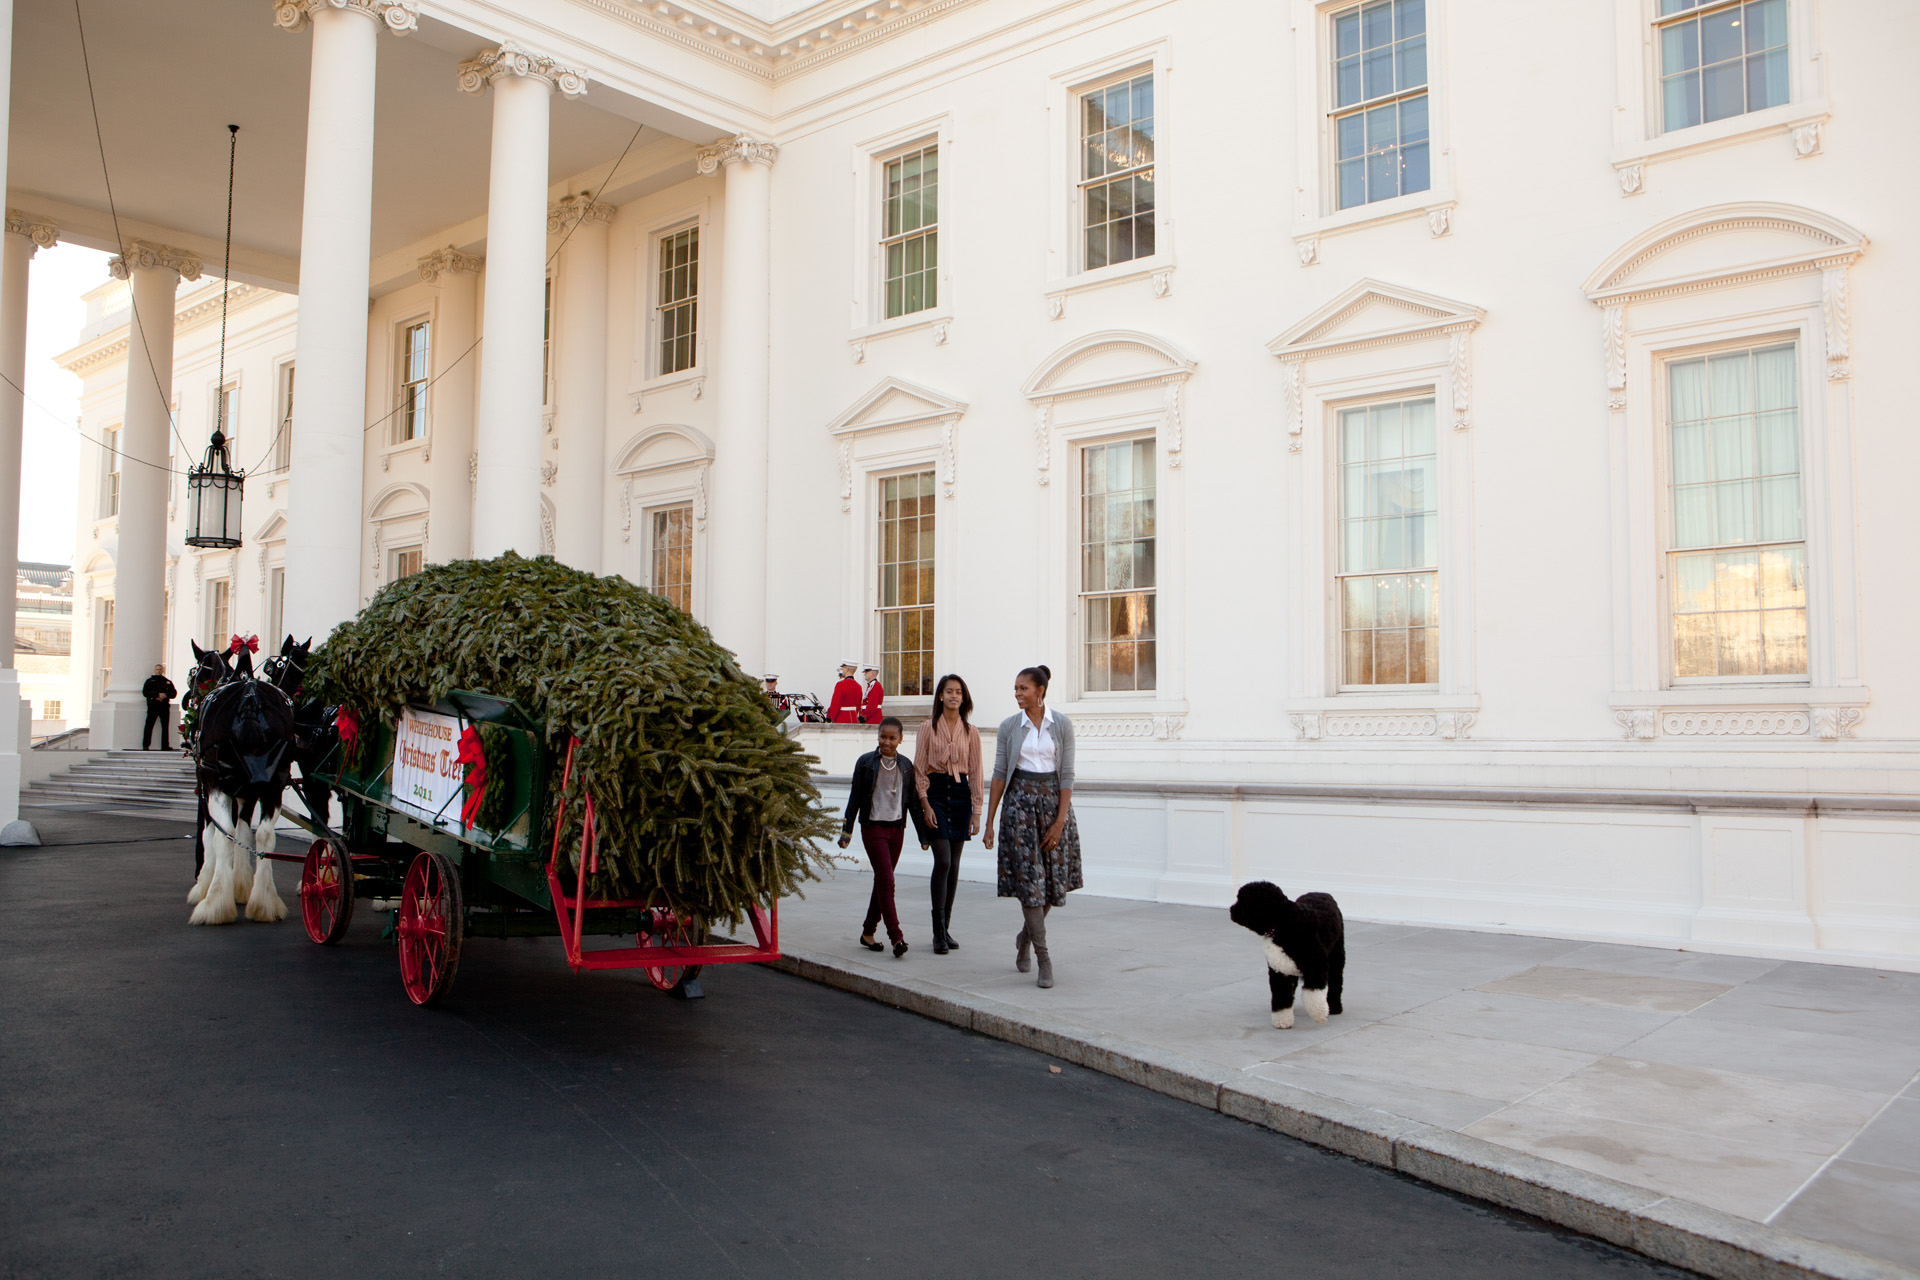 Receiving the White House Christmas tree